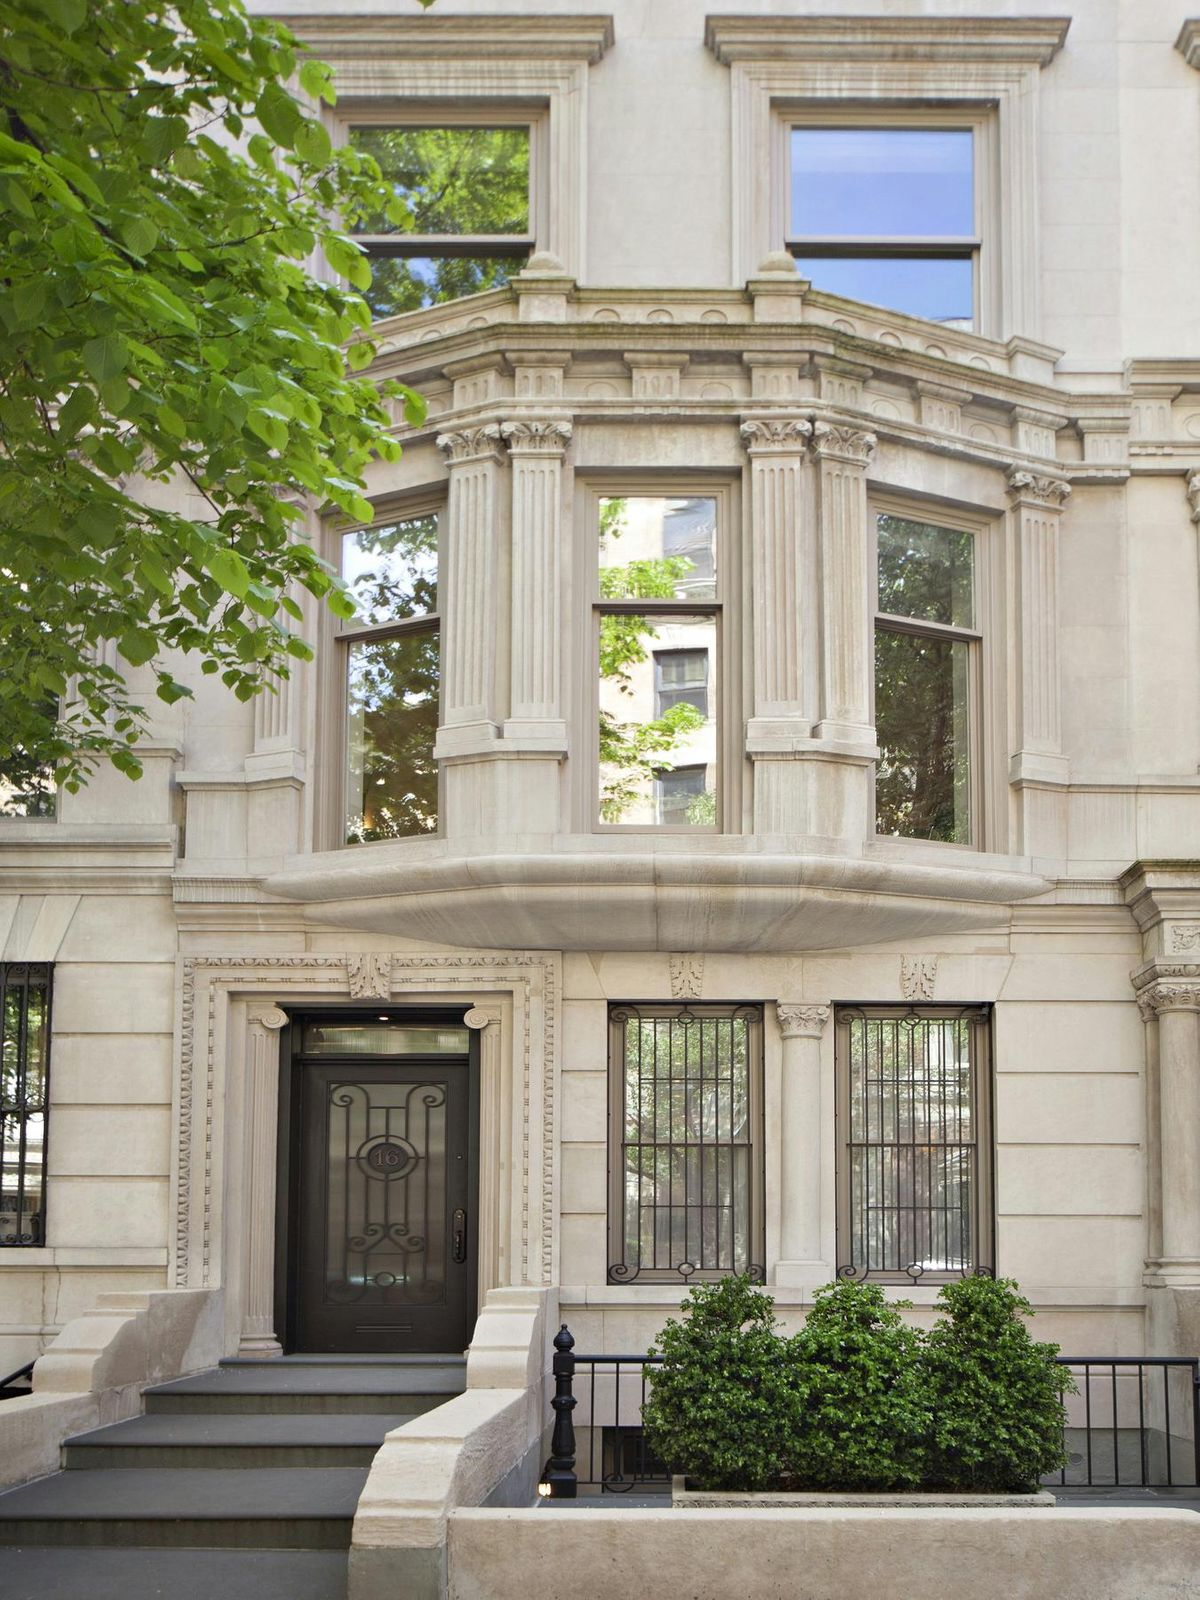 16 East 95th Street, New York NY Townhouse - New York City Real Estate